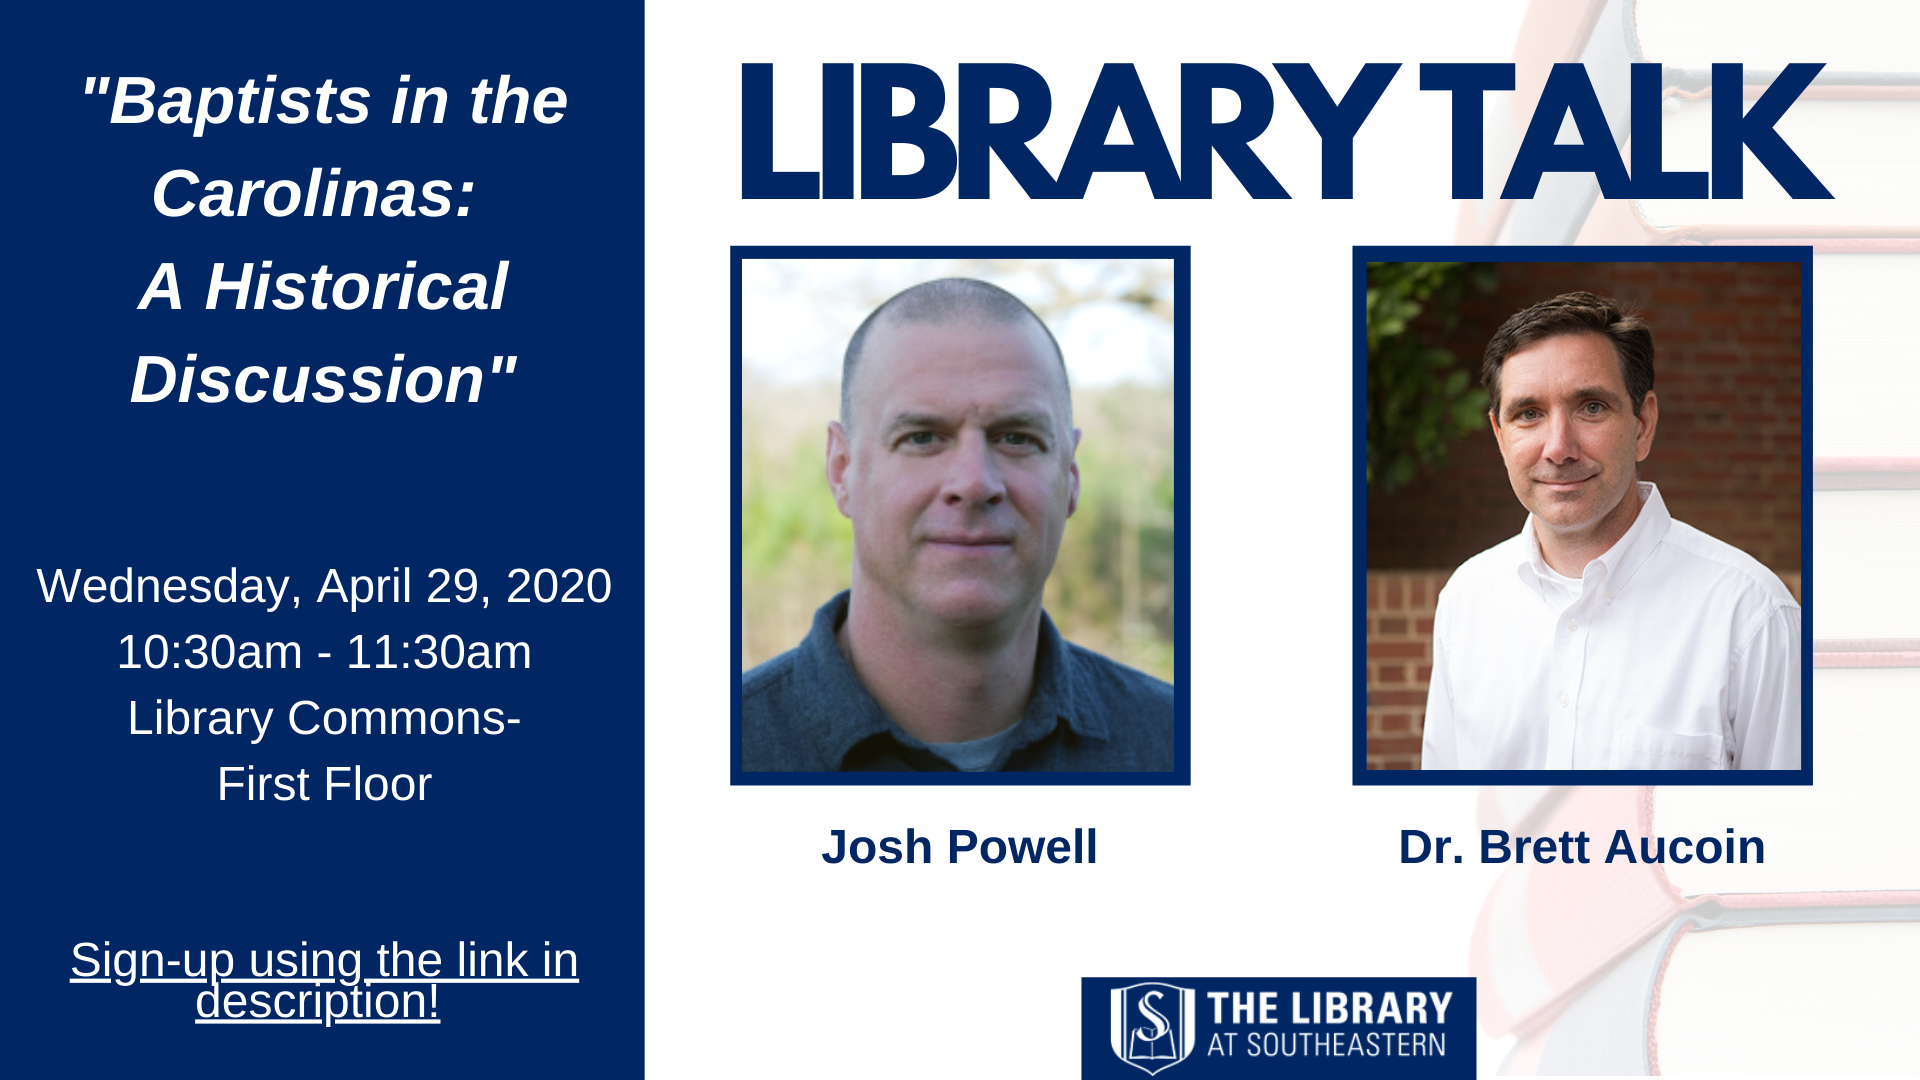 Library Talk: Baptists in the Carolinas: a Historical Discussion